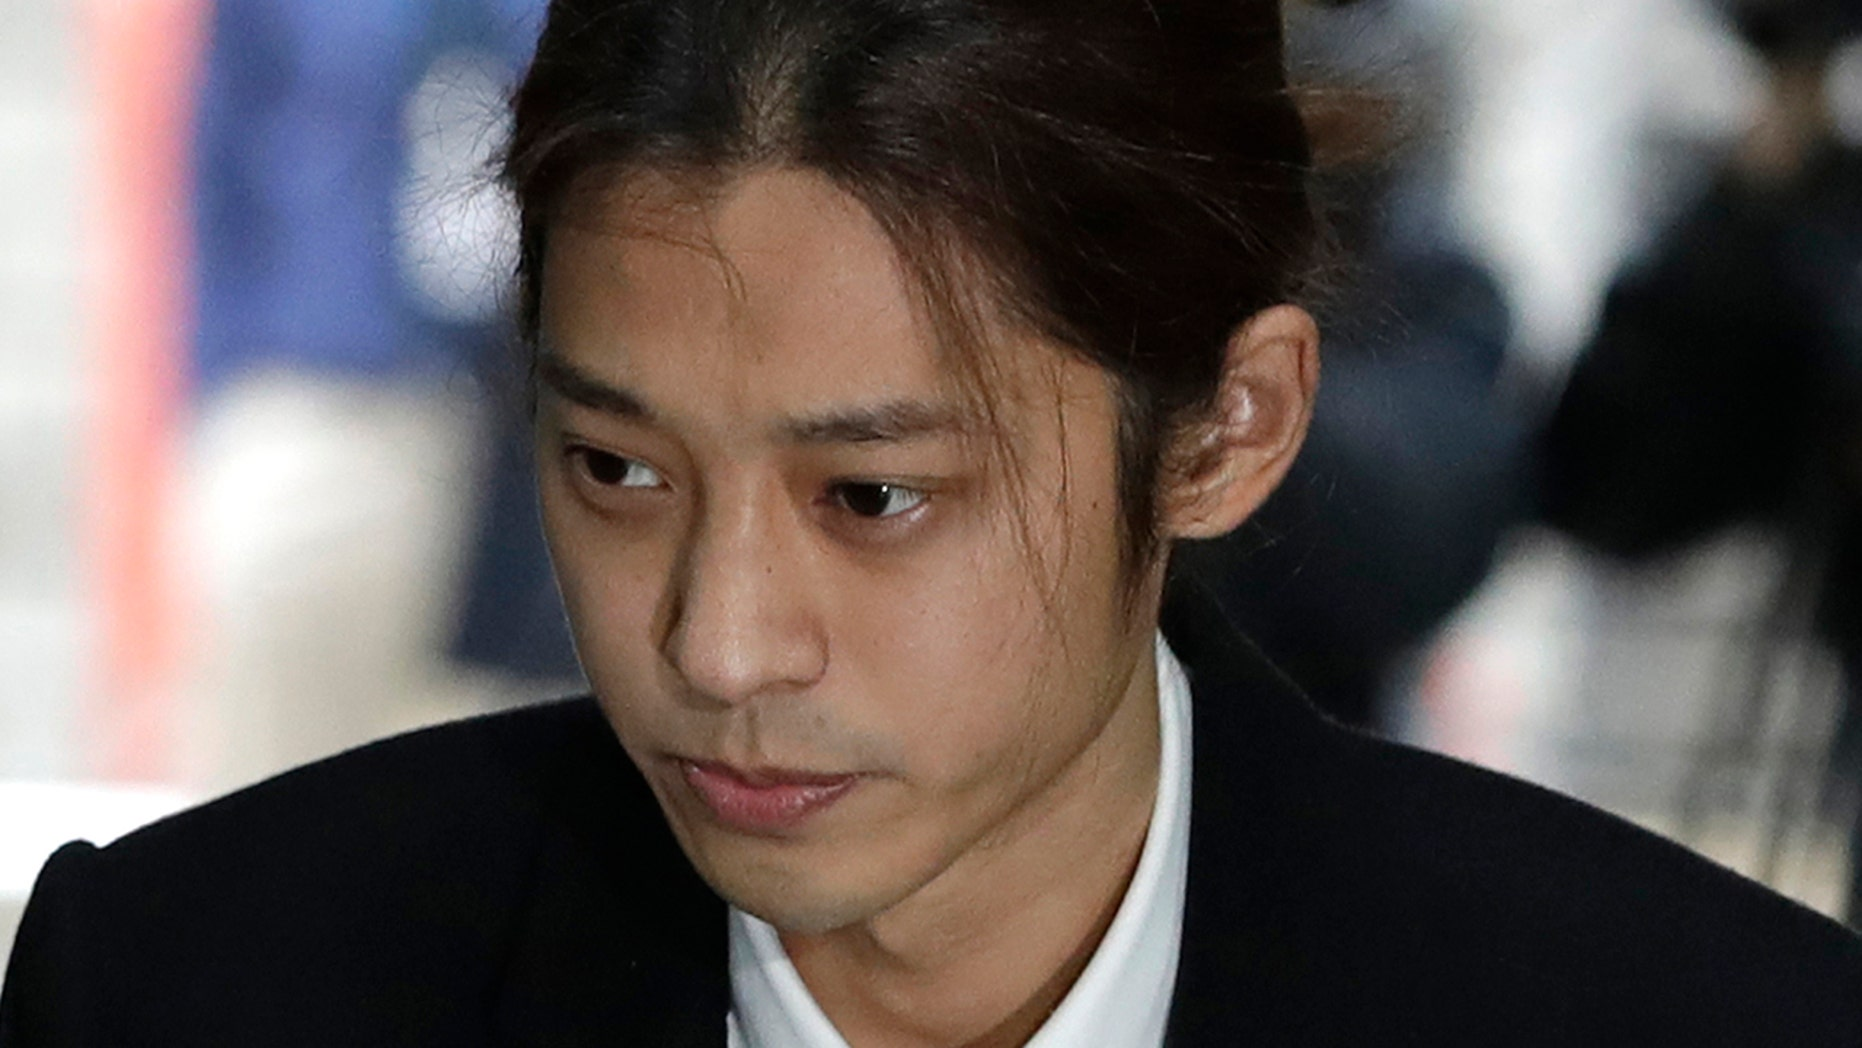 K-pop singer Jung Joon-young arrives to attend a hearing at the Seoul Central District Court in Seoul, South Korea, Thursday, March 21, 2019. A South Korean pop star has appeared at a court hearing to decide whether to arrest him over allegations that he illegally shared sexually explicit videos of women taken without their knowledge or consent in online group chats.